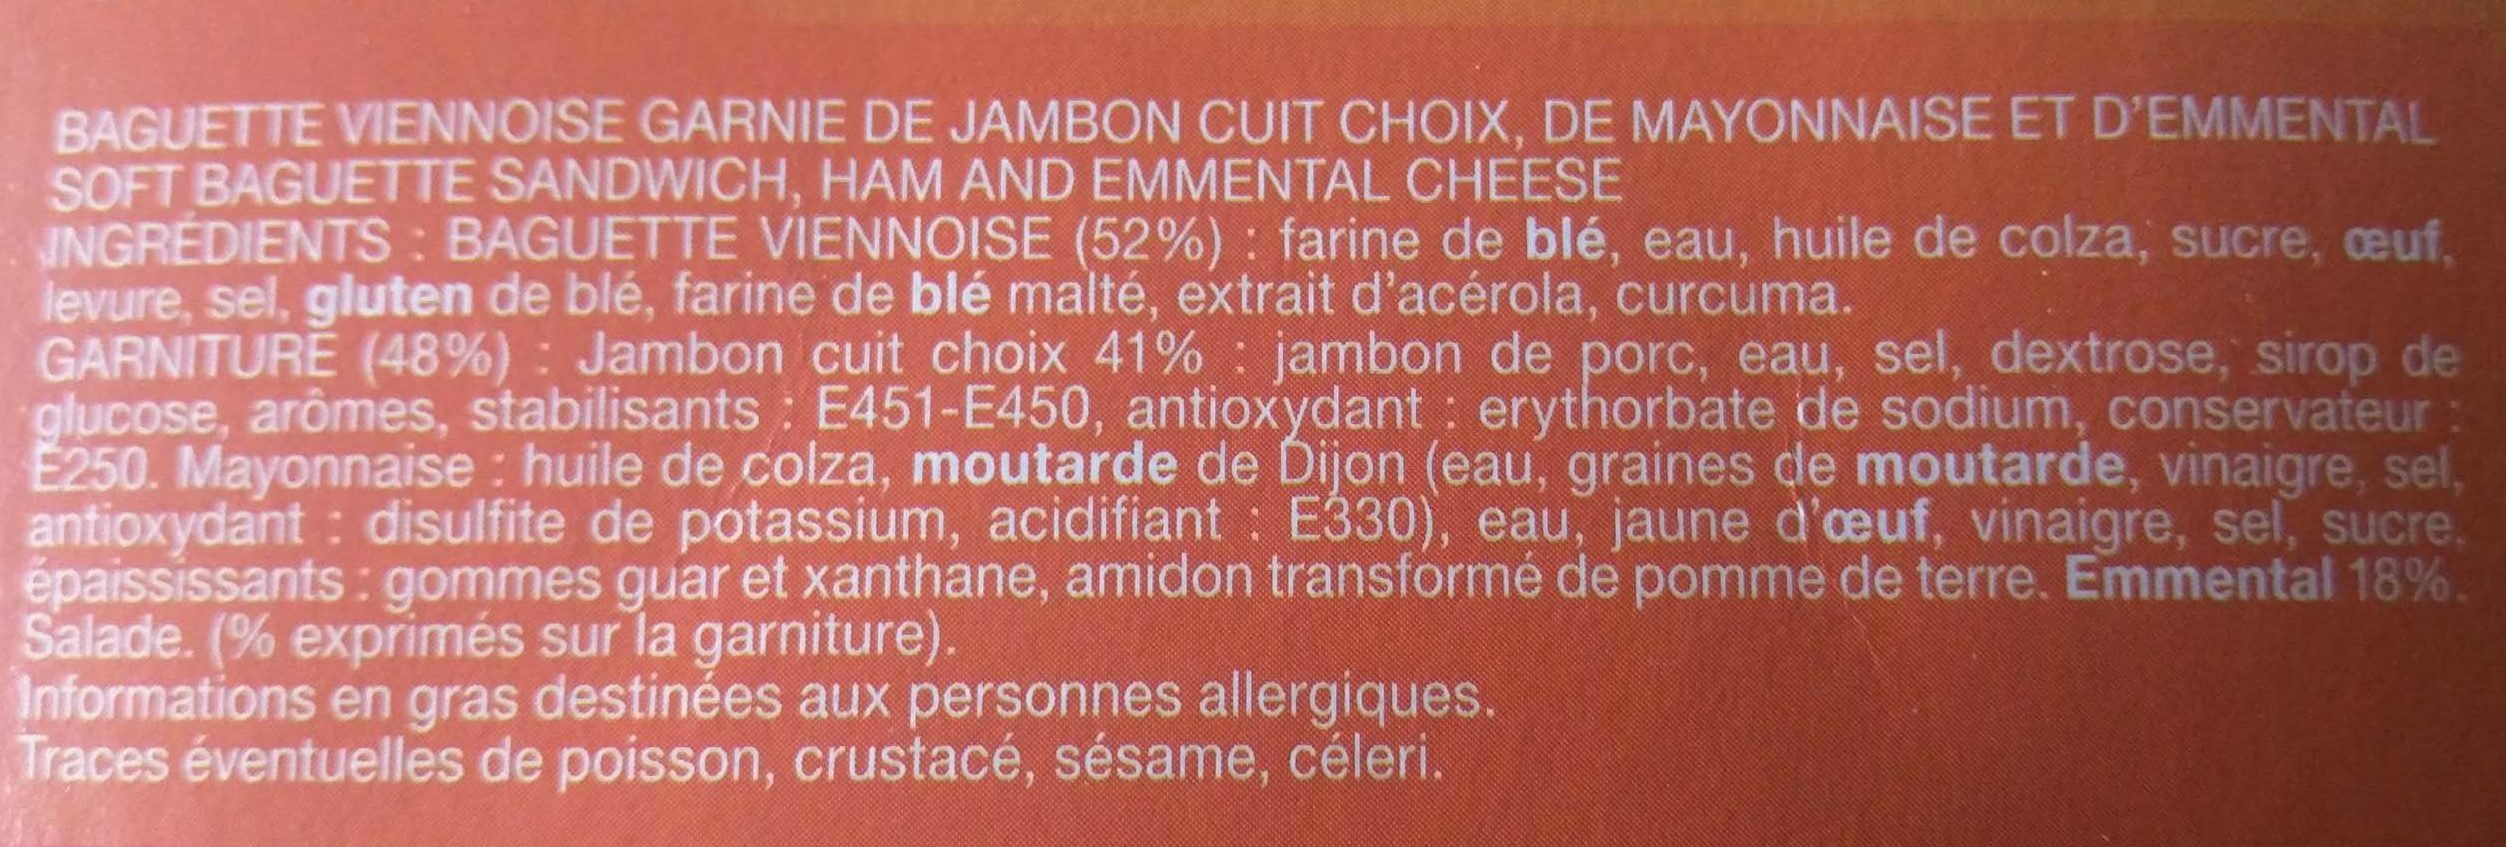 Le Moelleux Jambon Emmental - Ingredients